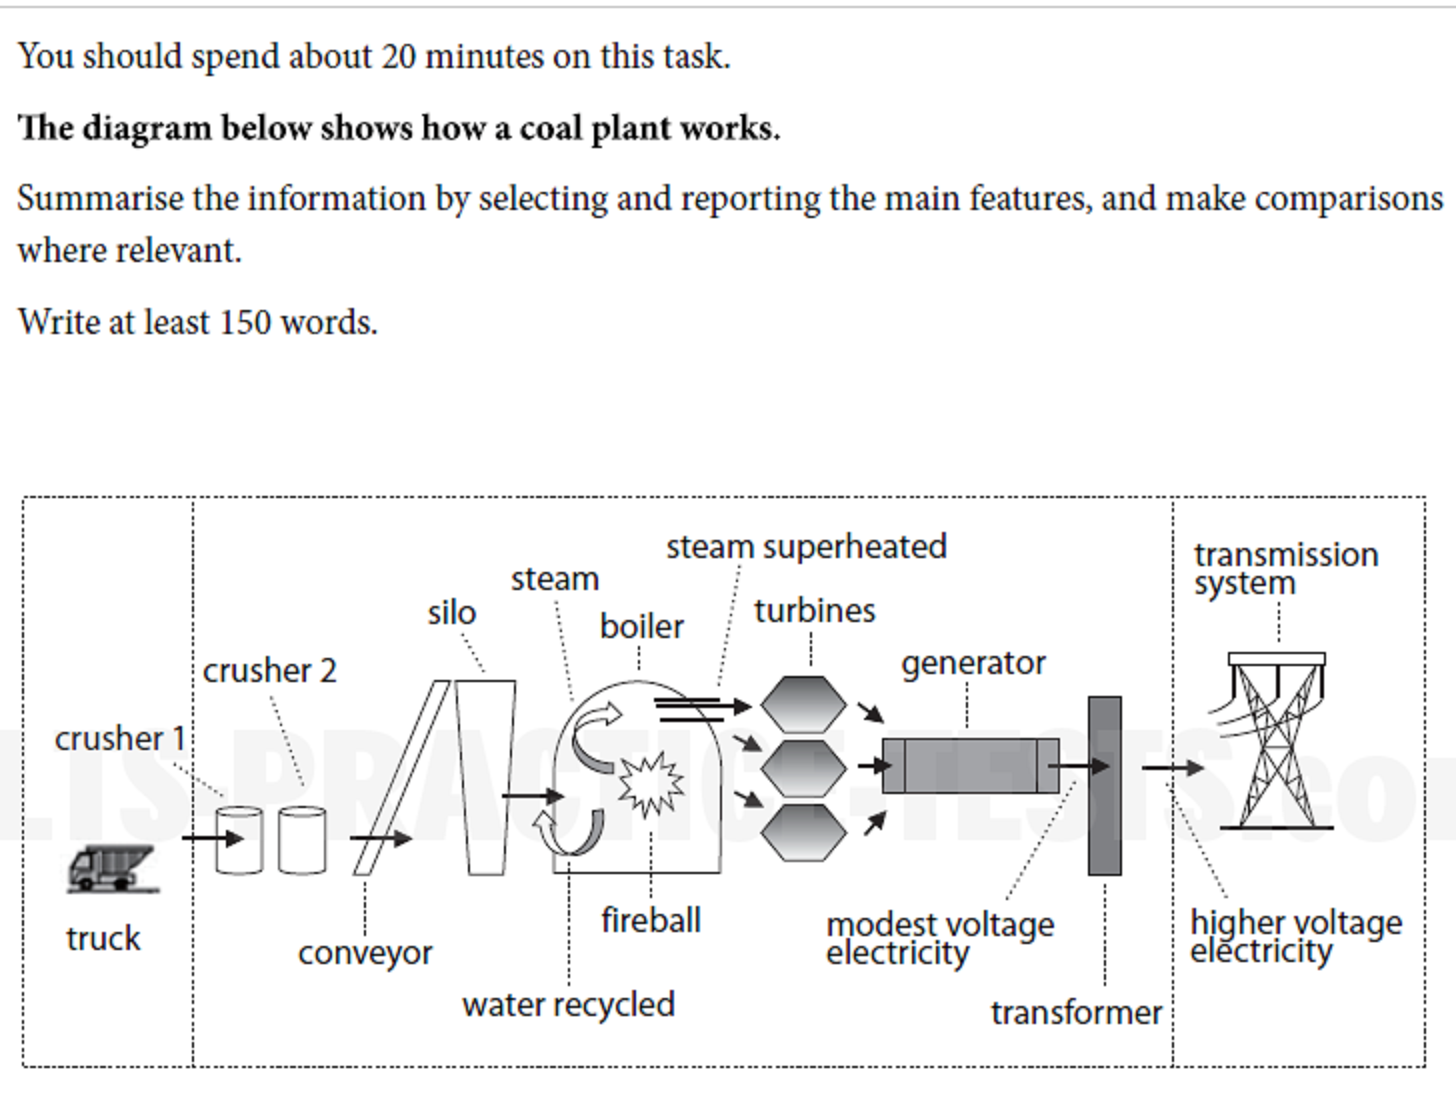 medium resolution of the diagram illustrates the coal plant process outlining from plants taken by a truck all the way through to producing electricity for transmission system